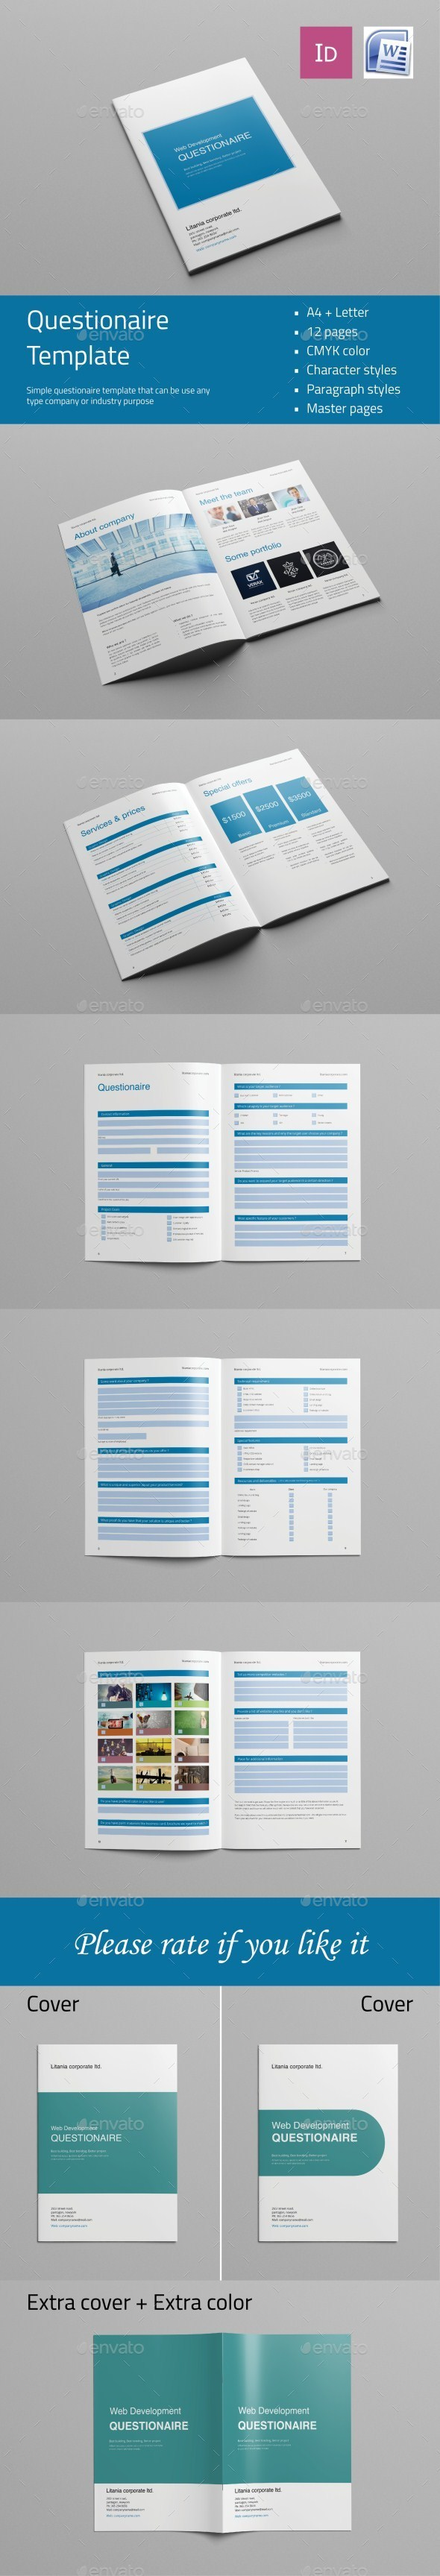 questionnaire design template - Ideal.vistalist.co